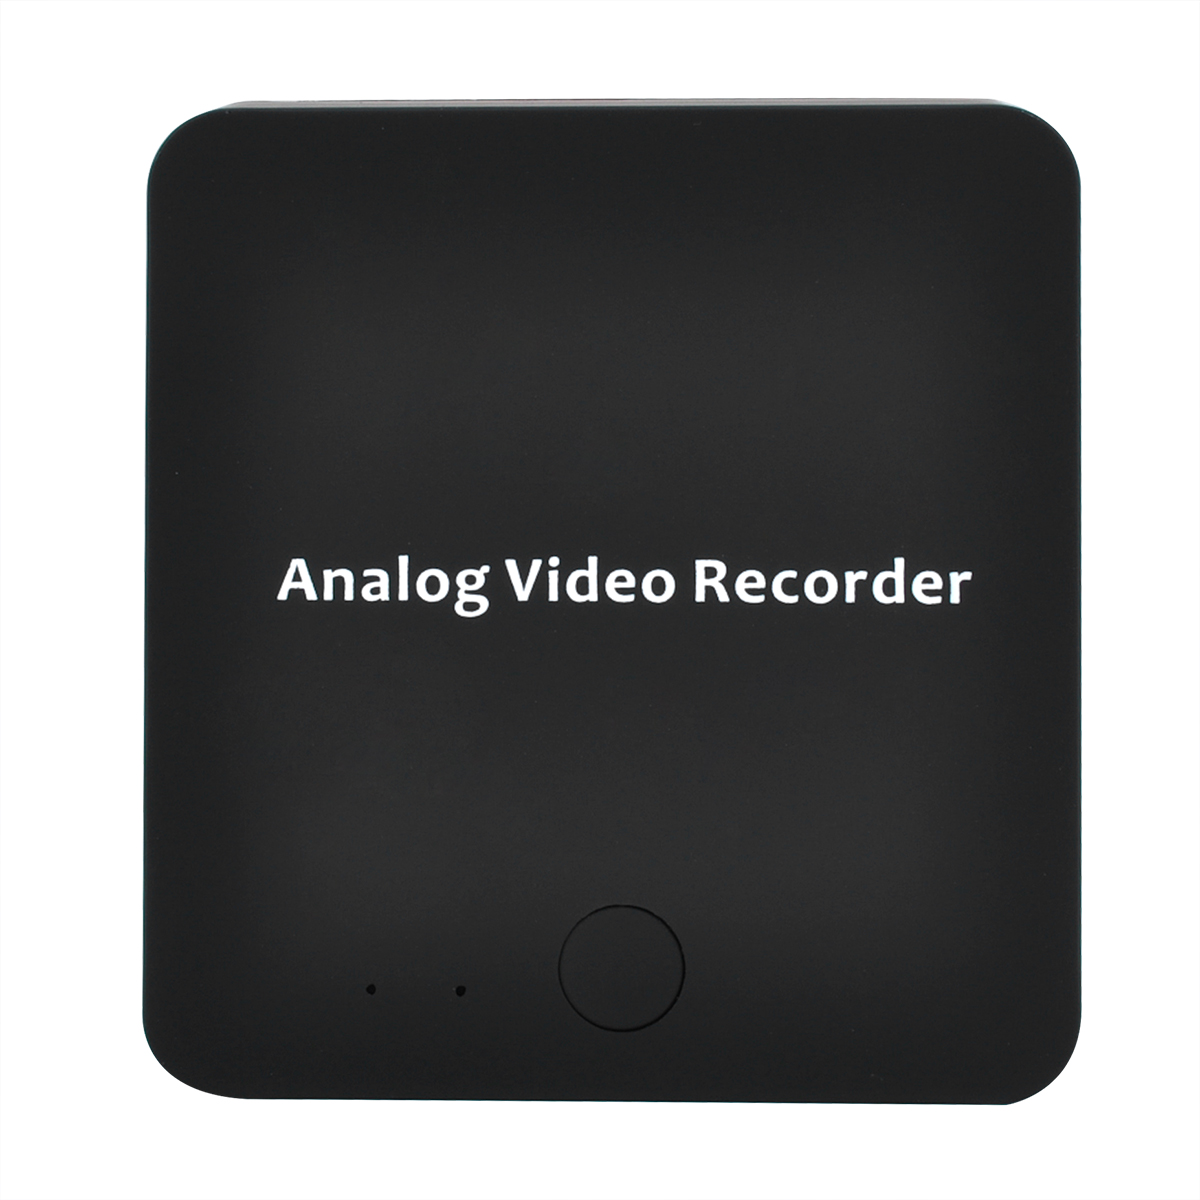 ezcap272 AV Recorder Record Analog Video to digital format One button record to into TF Card Analog Video Recorder